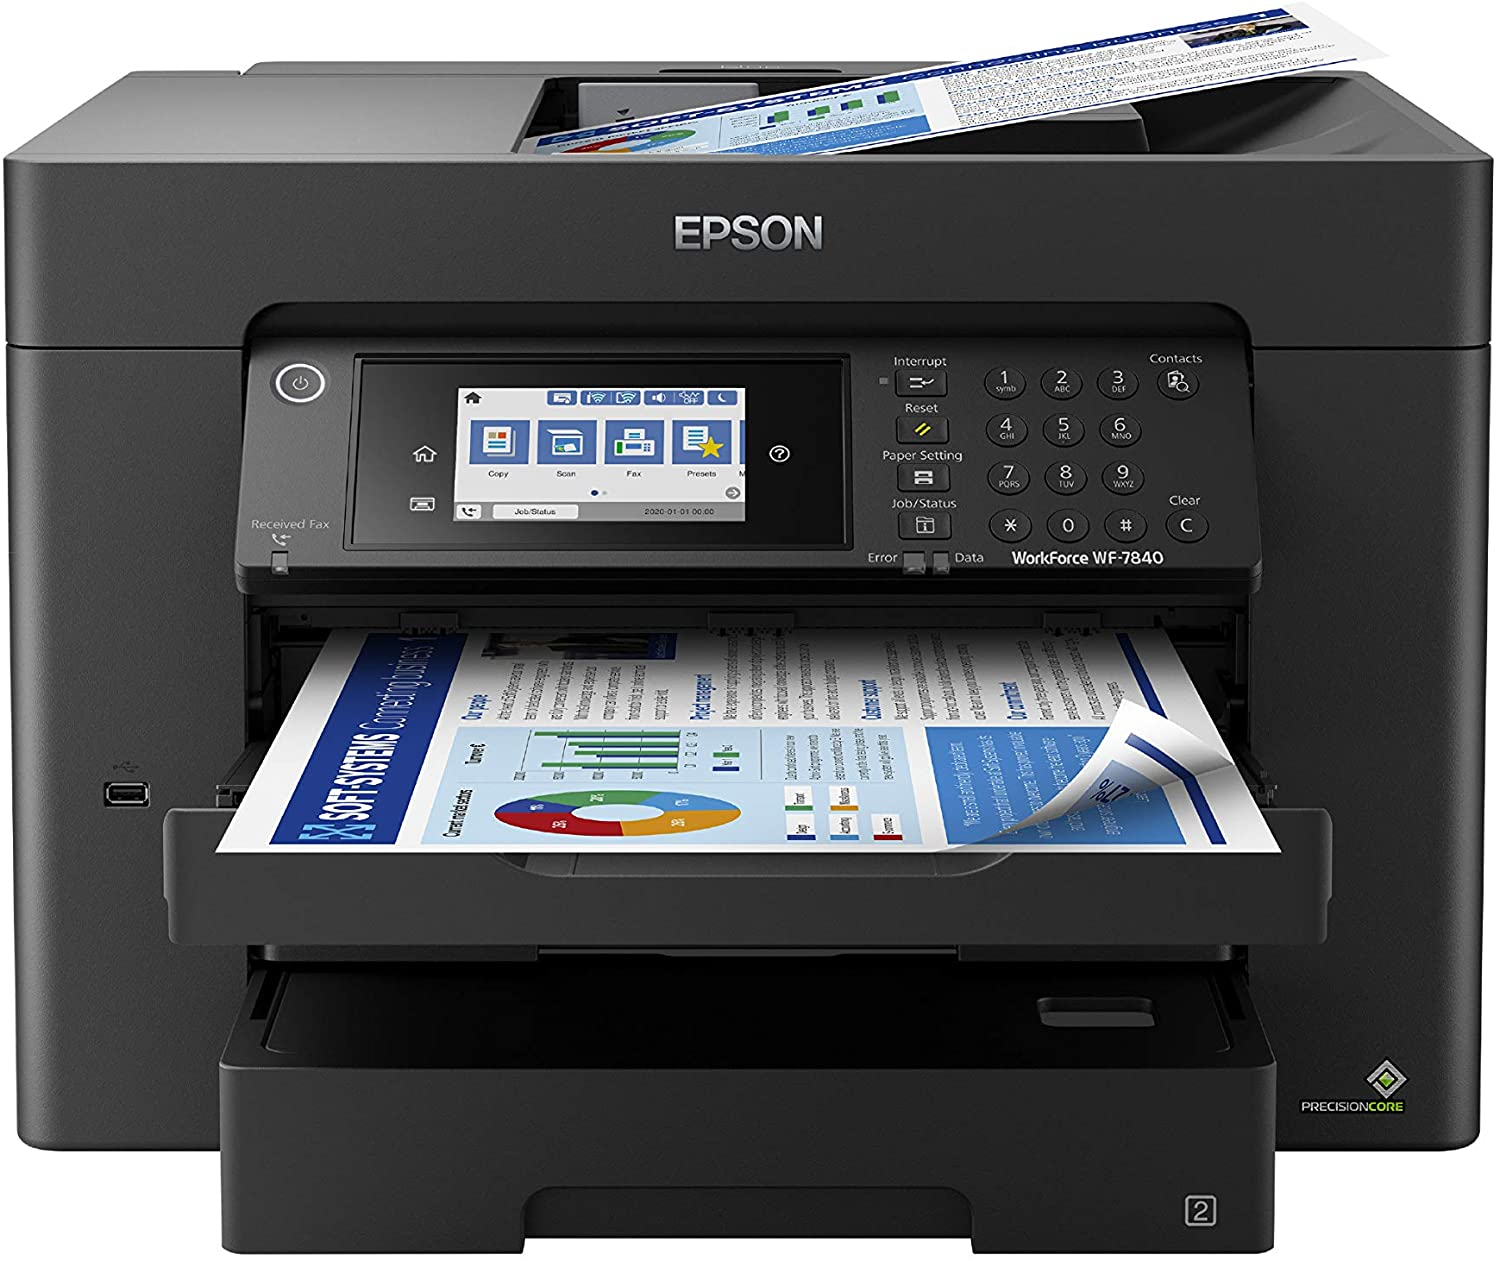 Epson WorkForce Pro WF-7840 Wireless All-in-One Wide-format Printer with Auto 2-sided Print up to 13